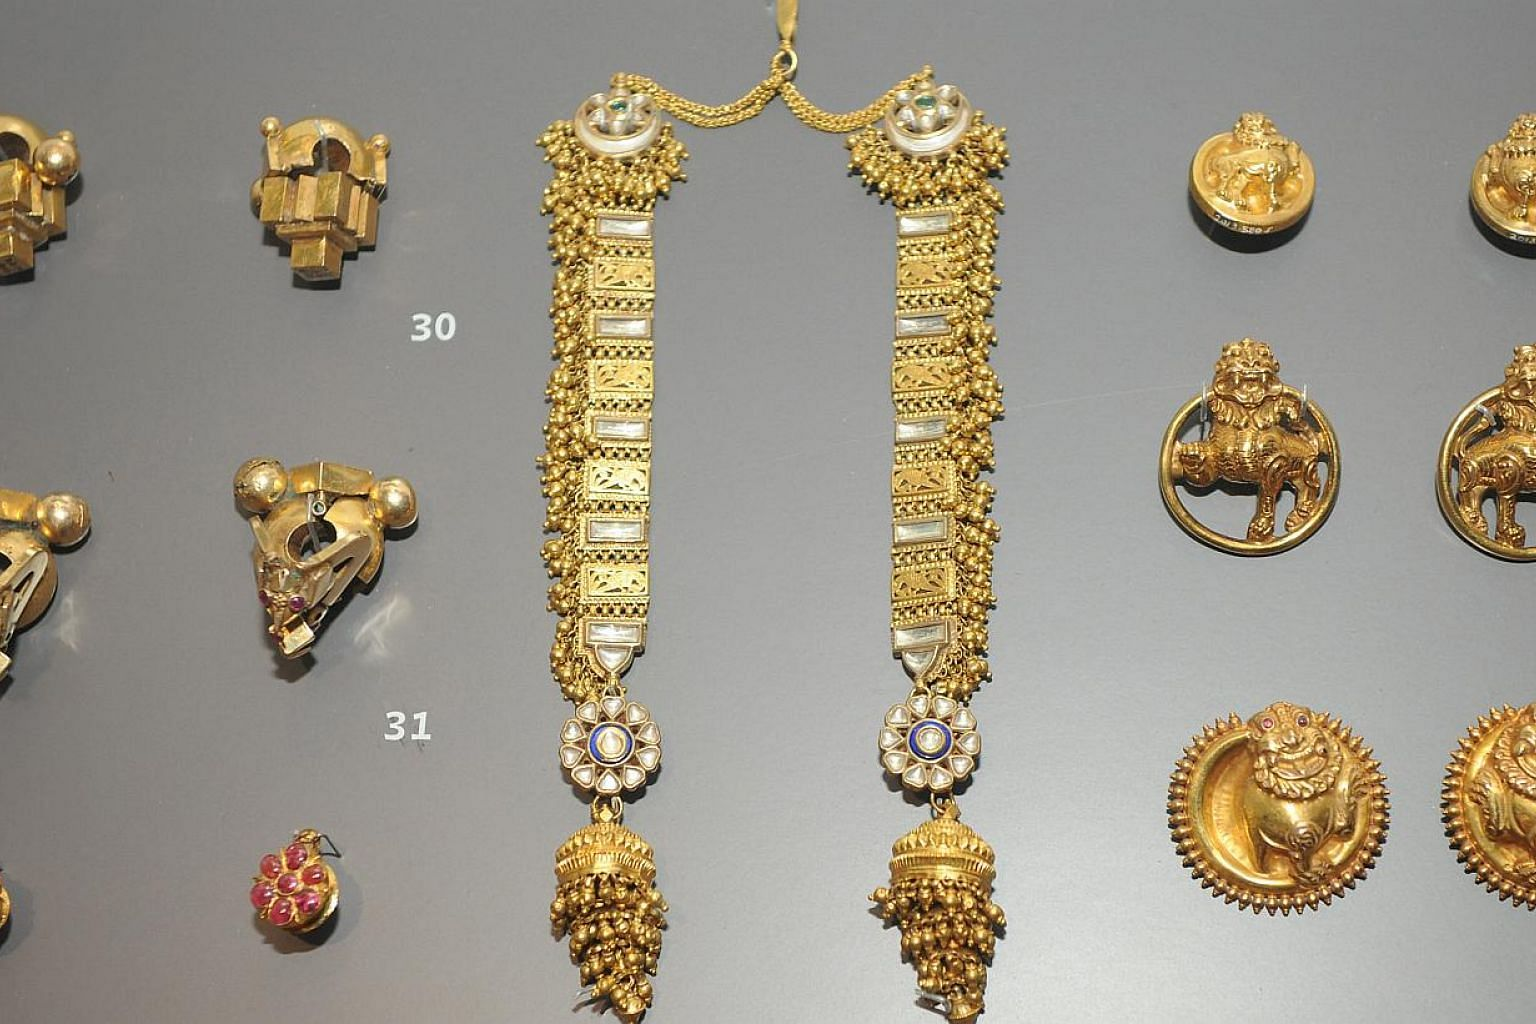 ARTEFACTS ON SHOW: Jewellery on display at the Indian Heritage Centre. -- ST PHOTO: TIFFANY GOH